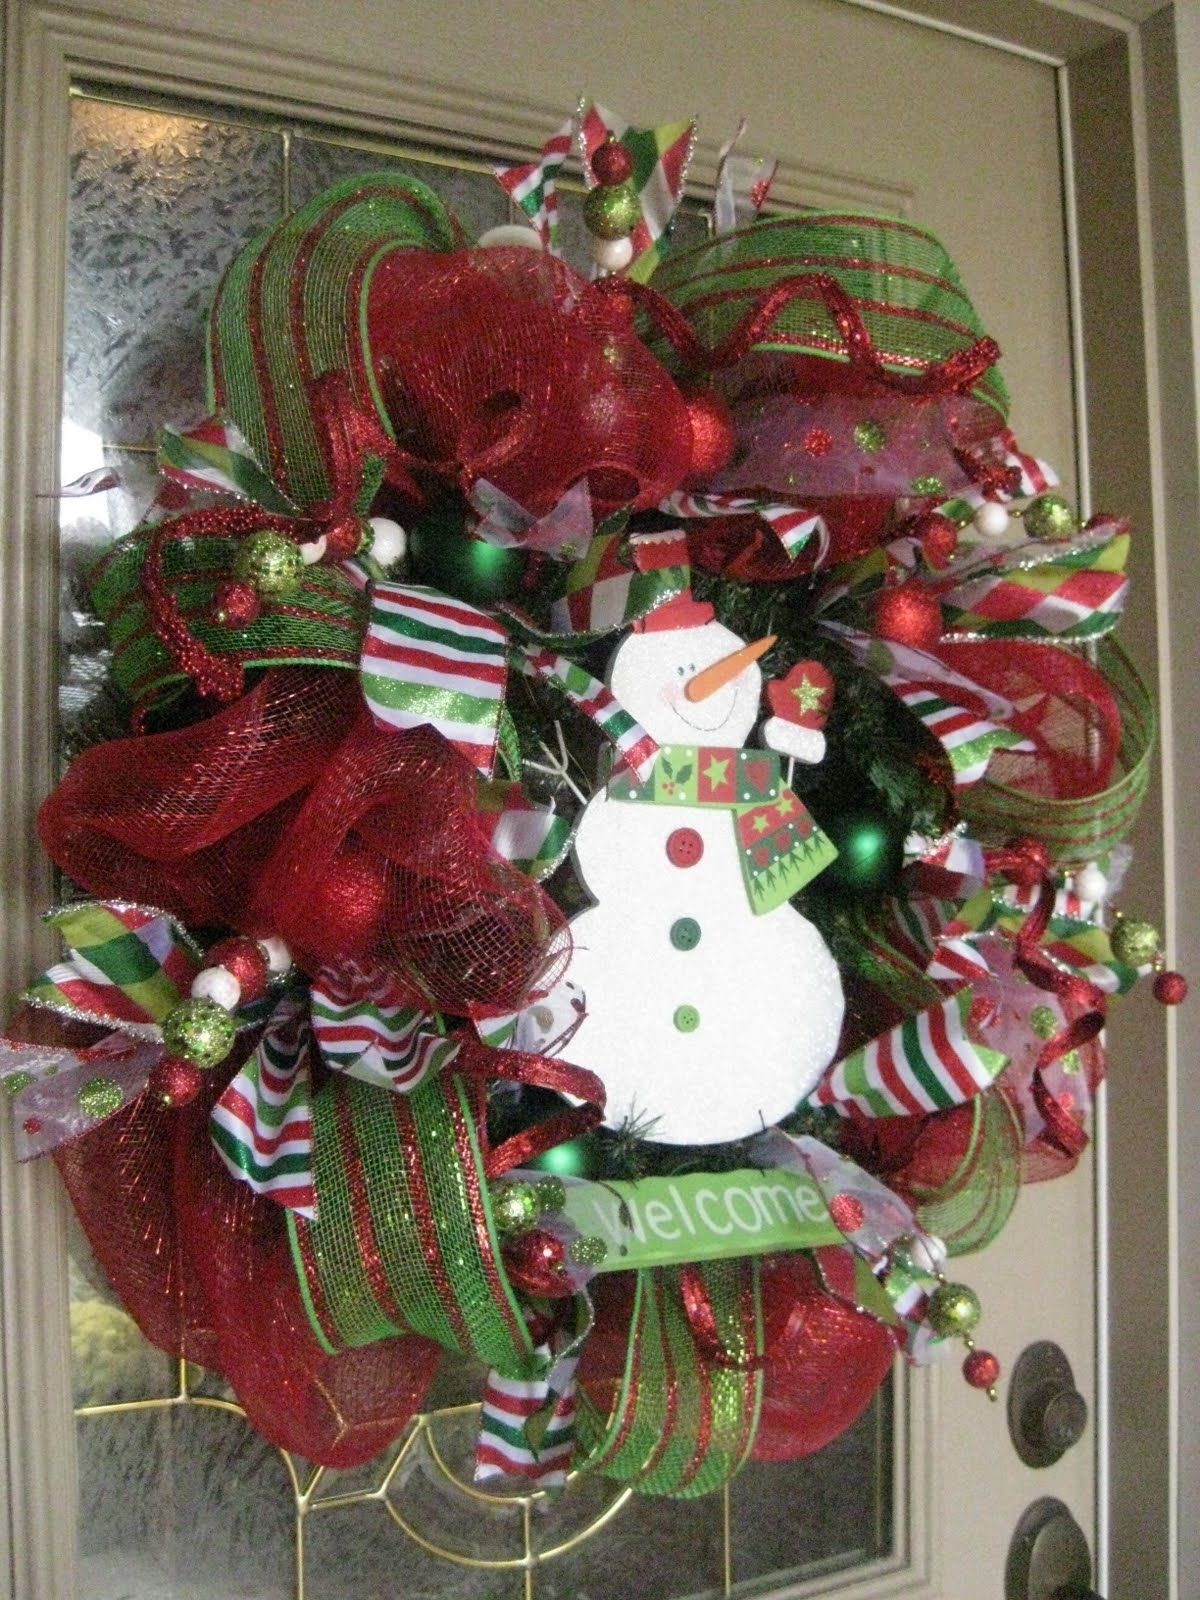 Hobby Lobby Christmas Wreaths.Christmas Wreath Making Gathered Most Of My Supplies From